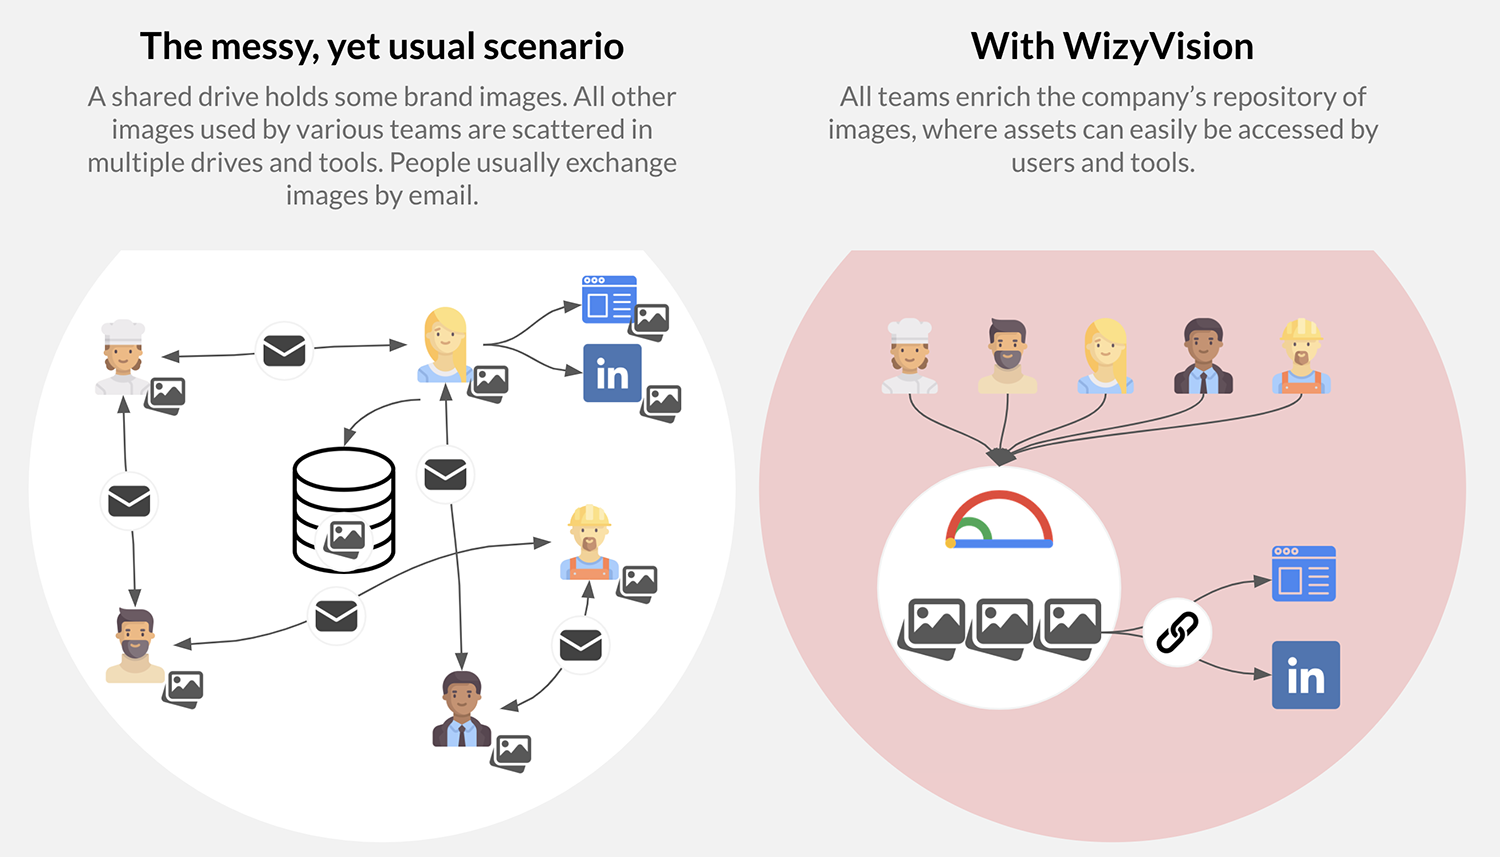 WizyVision enriches team collaboration compared to a scattered storage solution such as a shared drive